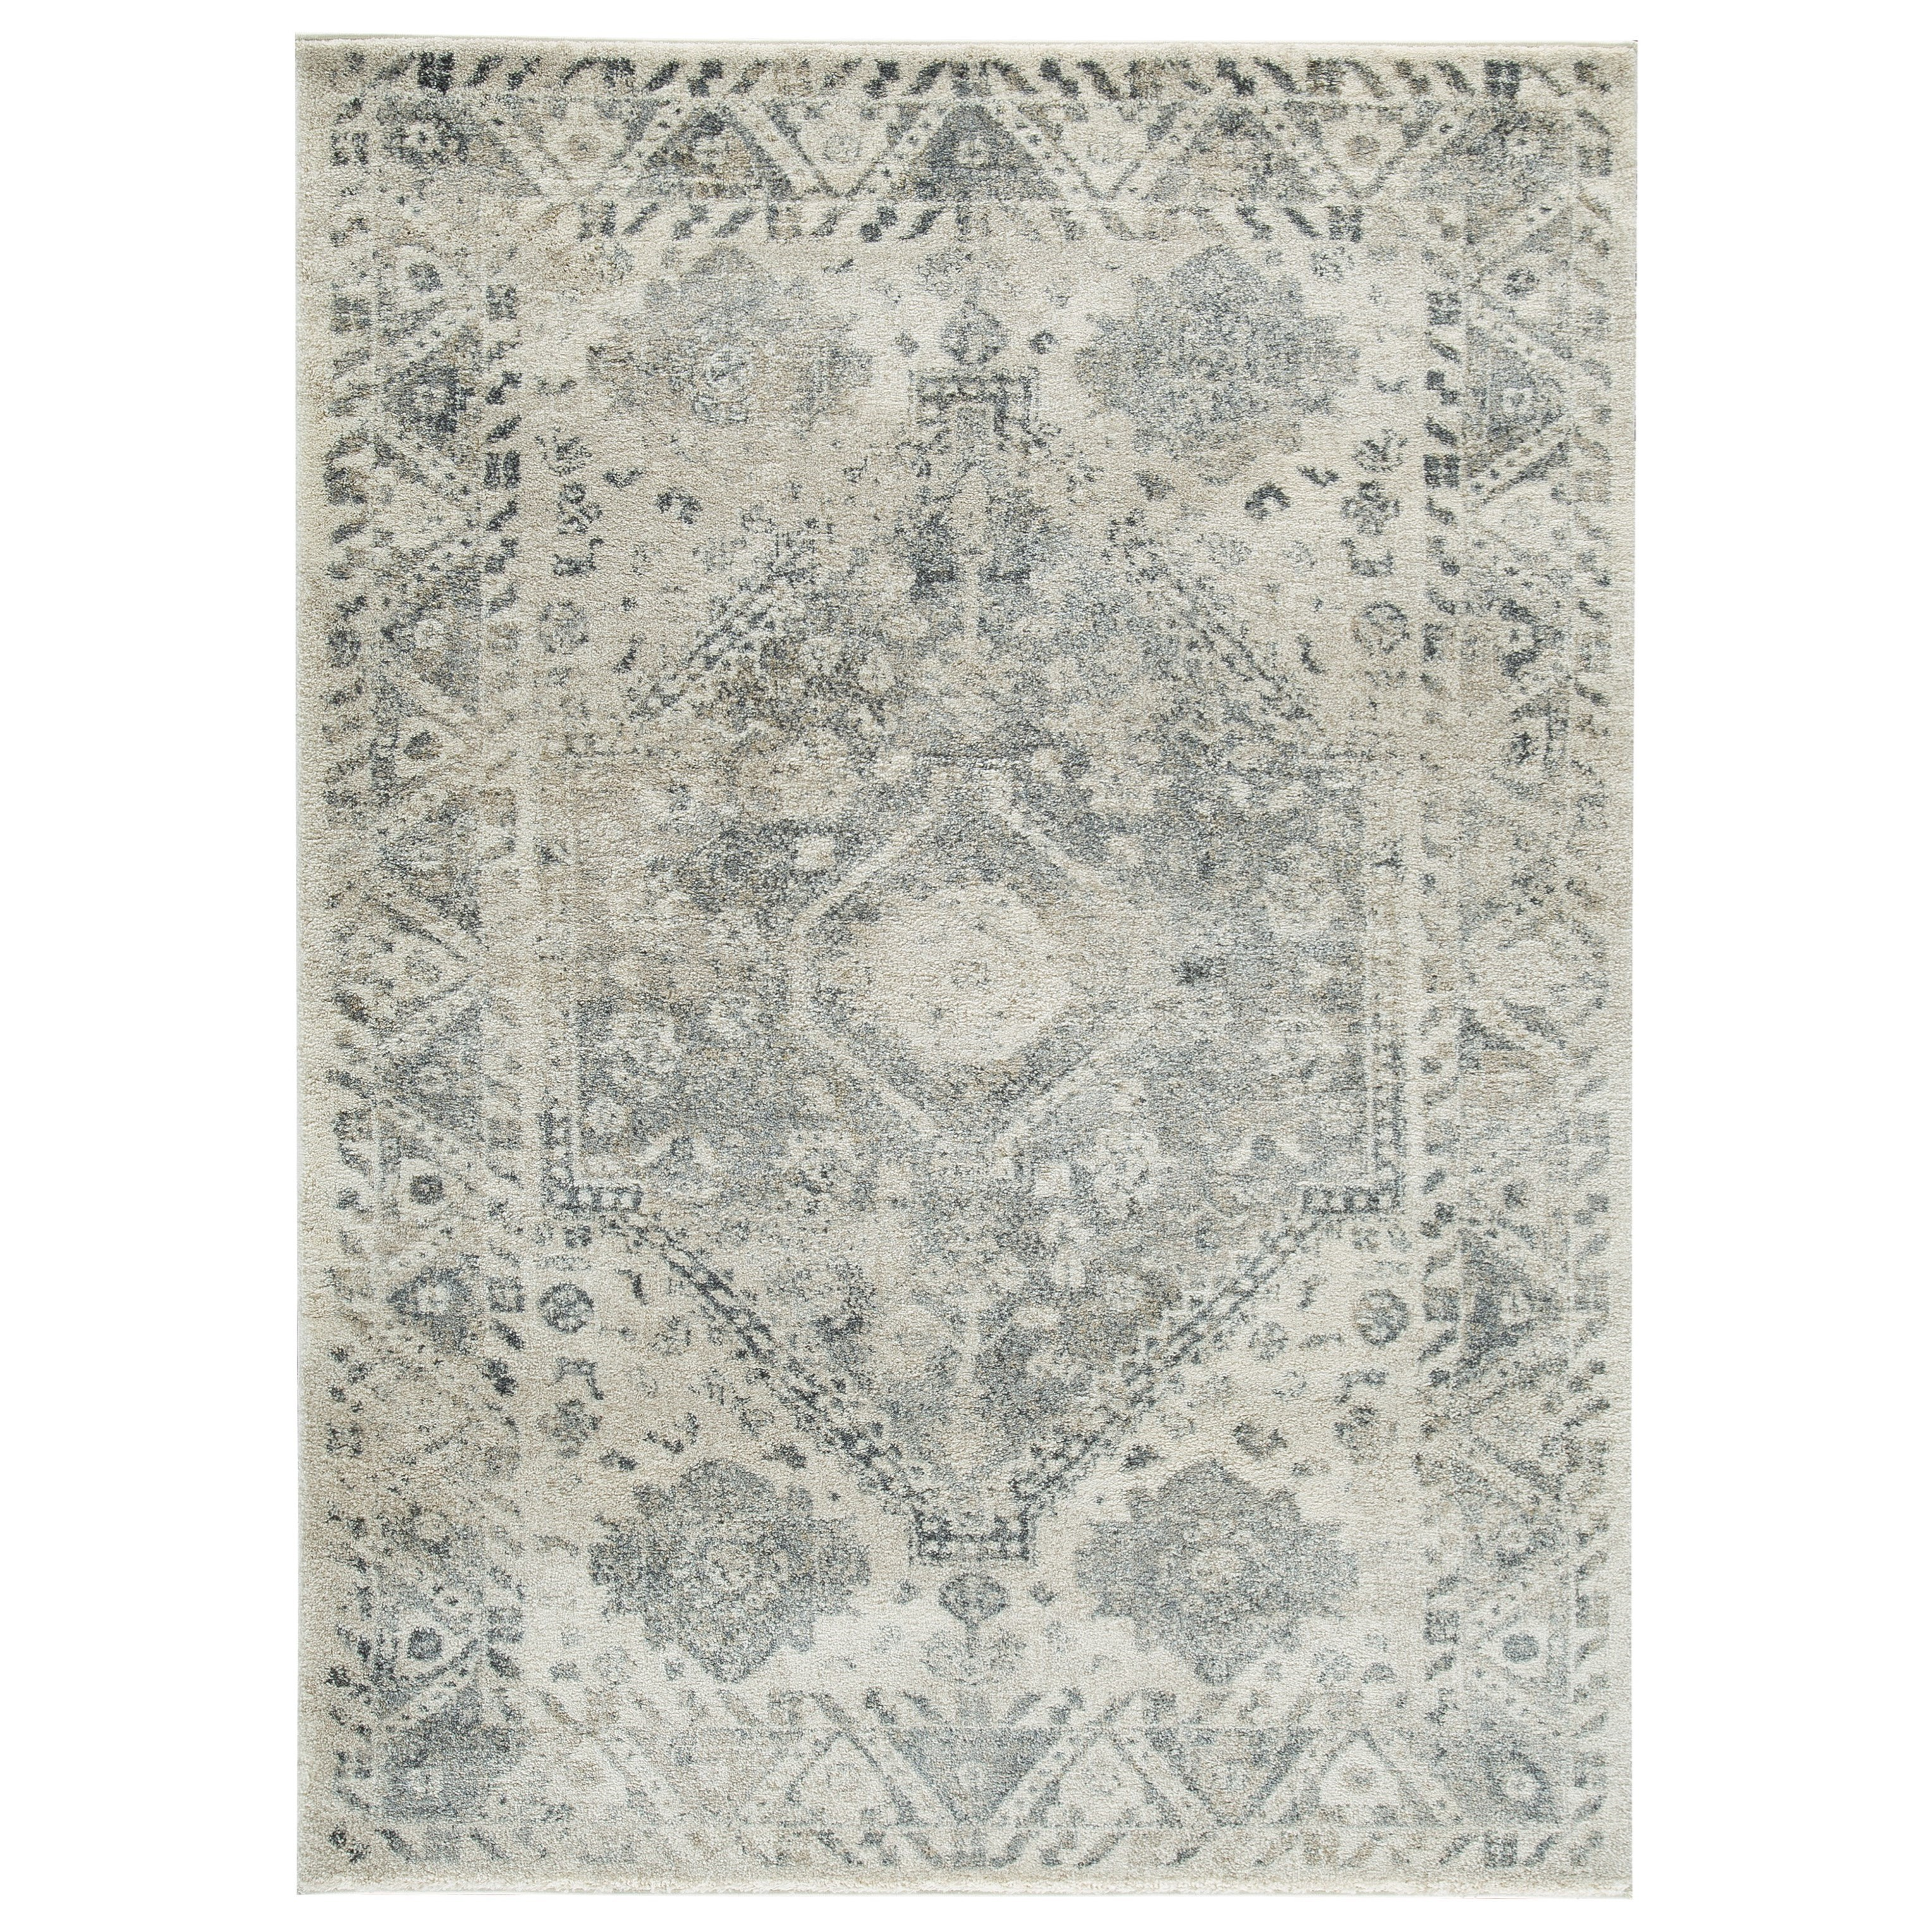 Precia Gray/Cream Medium Rug